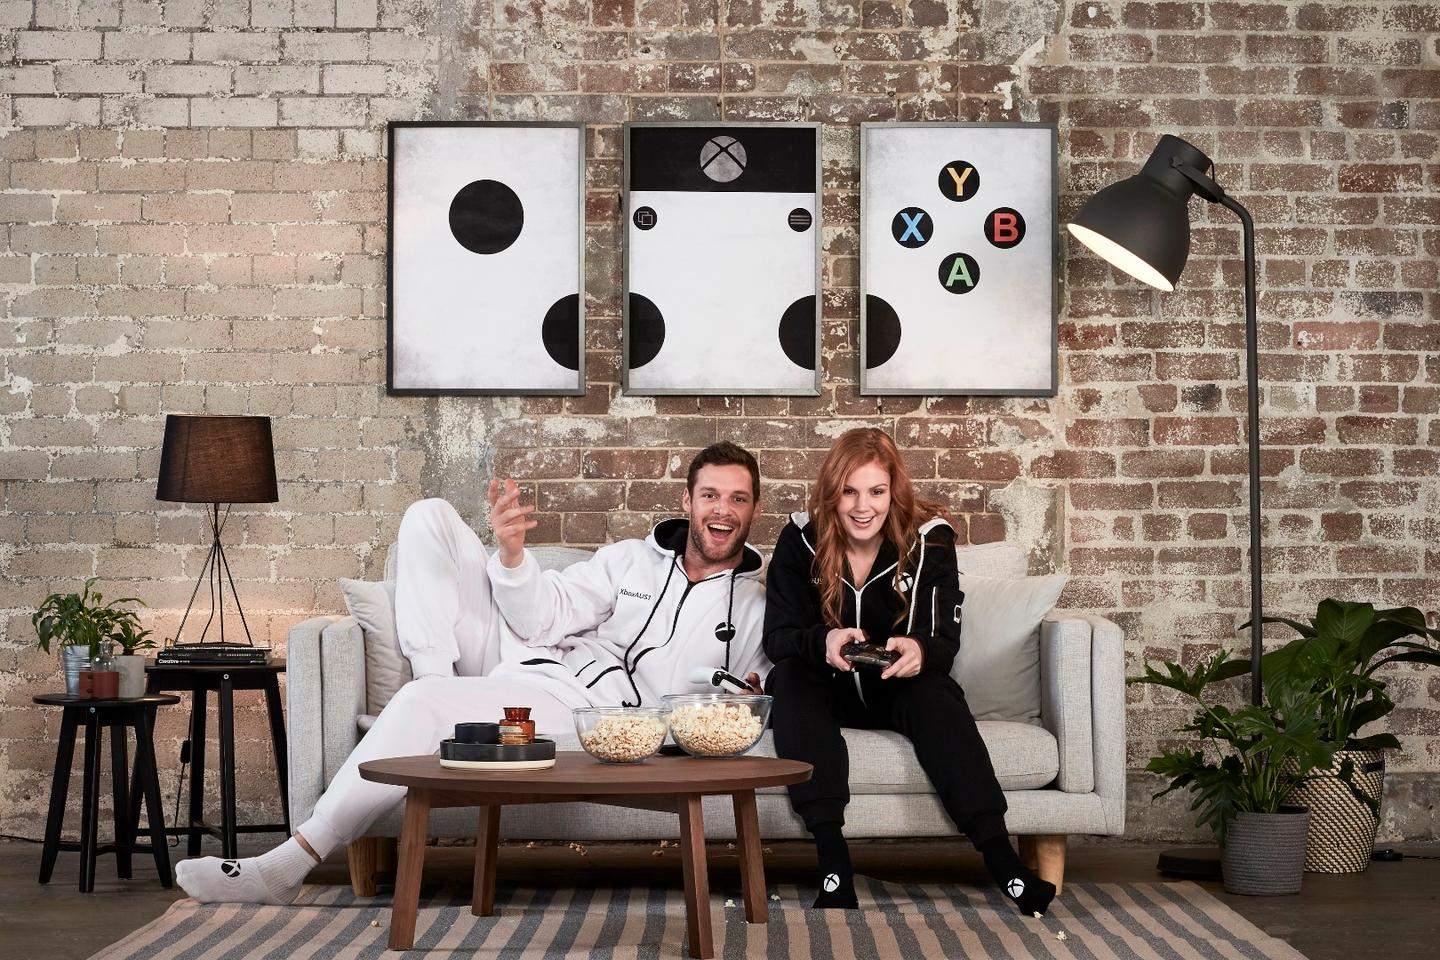 The Xbox Onesie has been aimed directly at gamers and couch potatoes